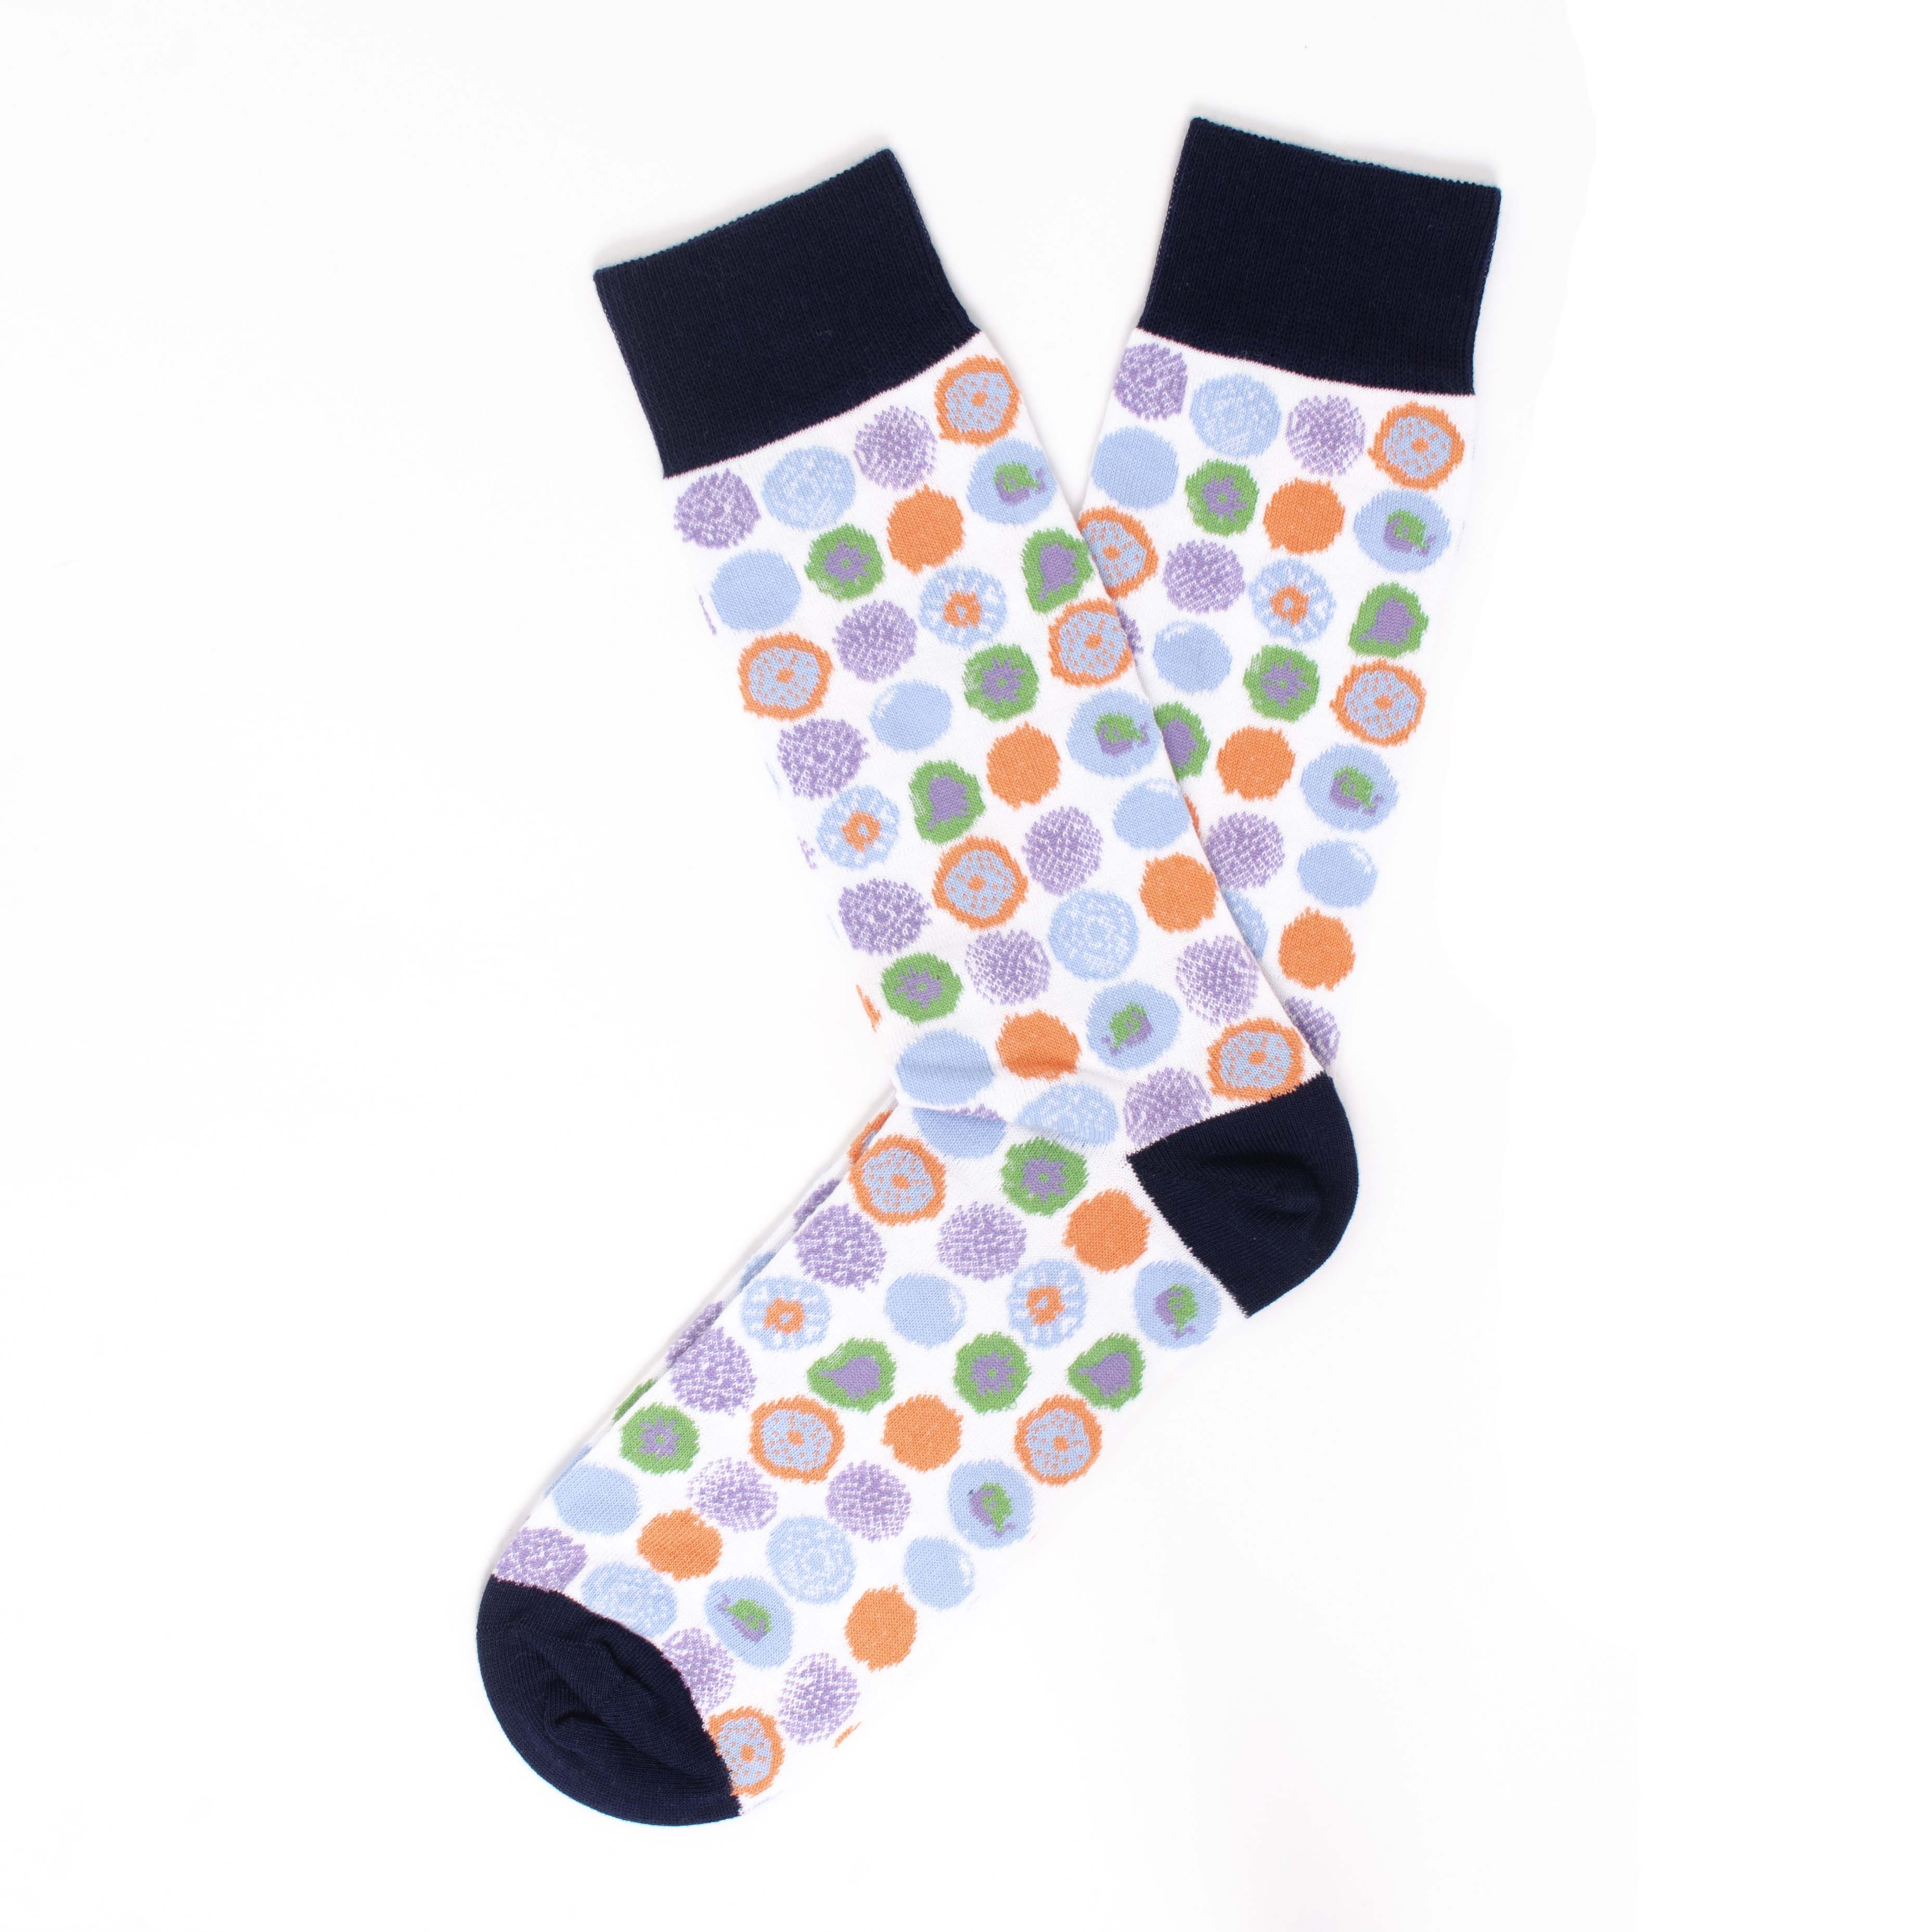 Socks with circle design